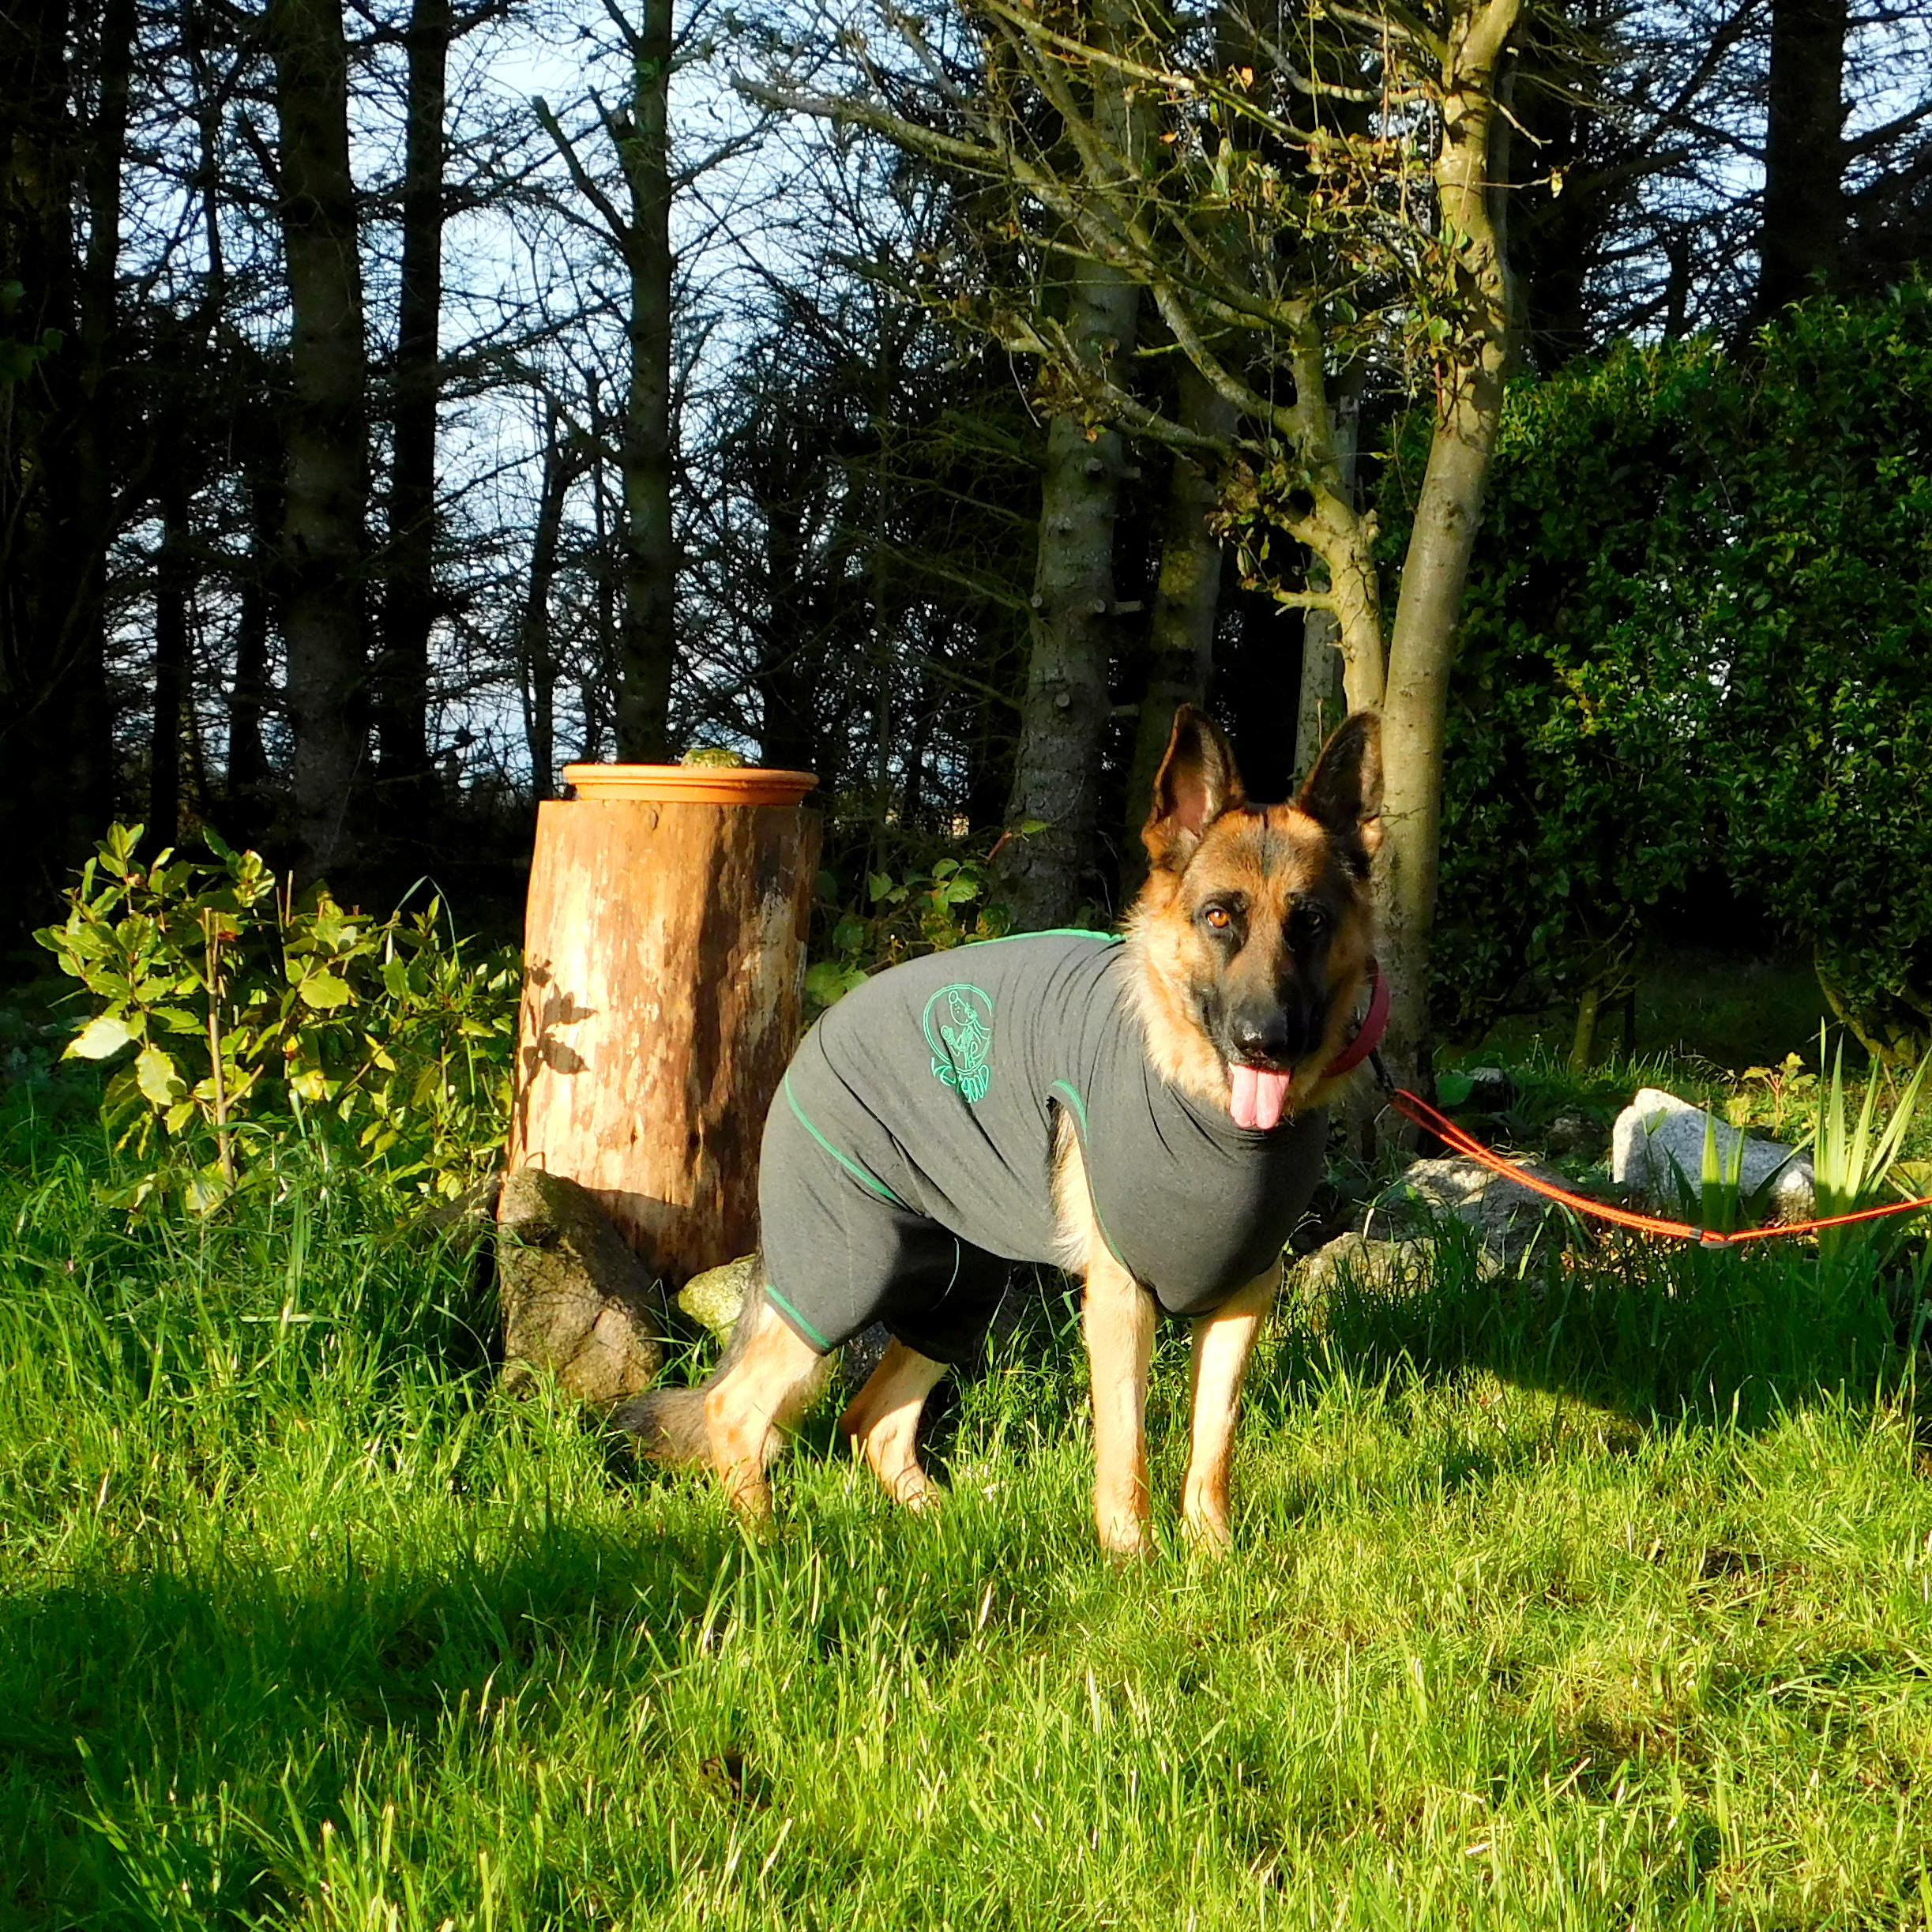 Tilly wearing her Vetgood Protective Medical Suit